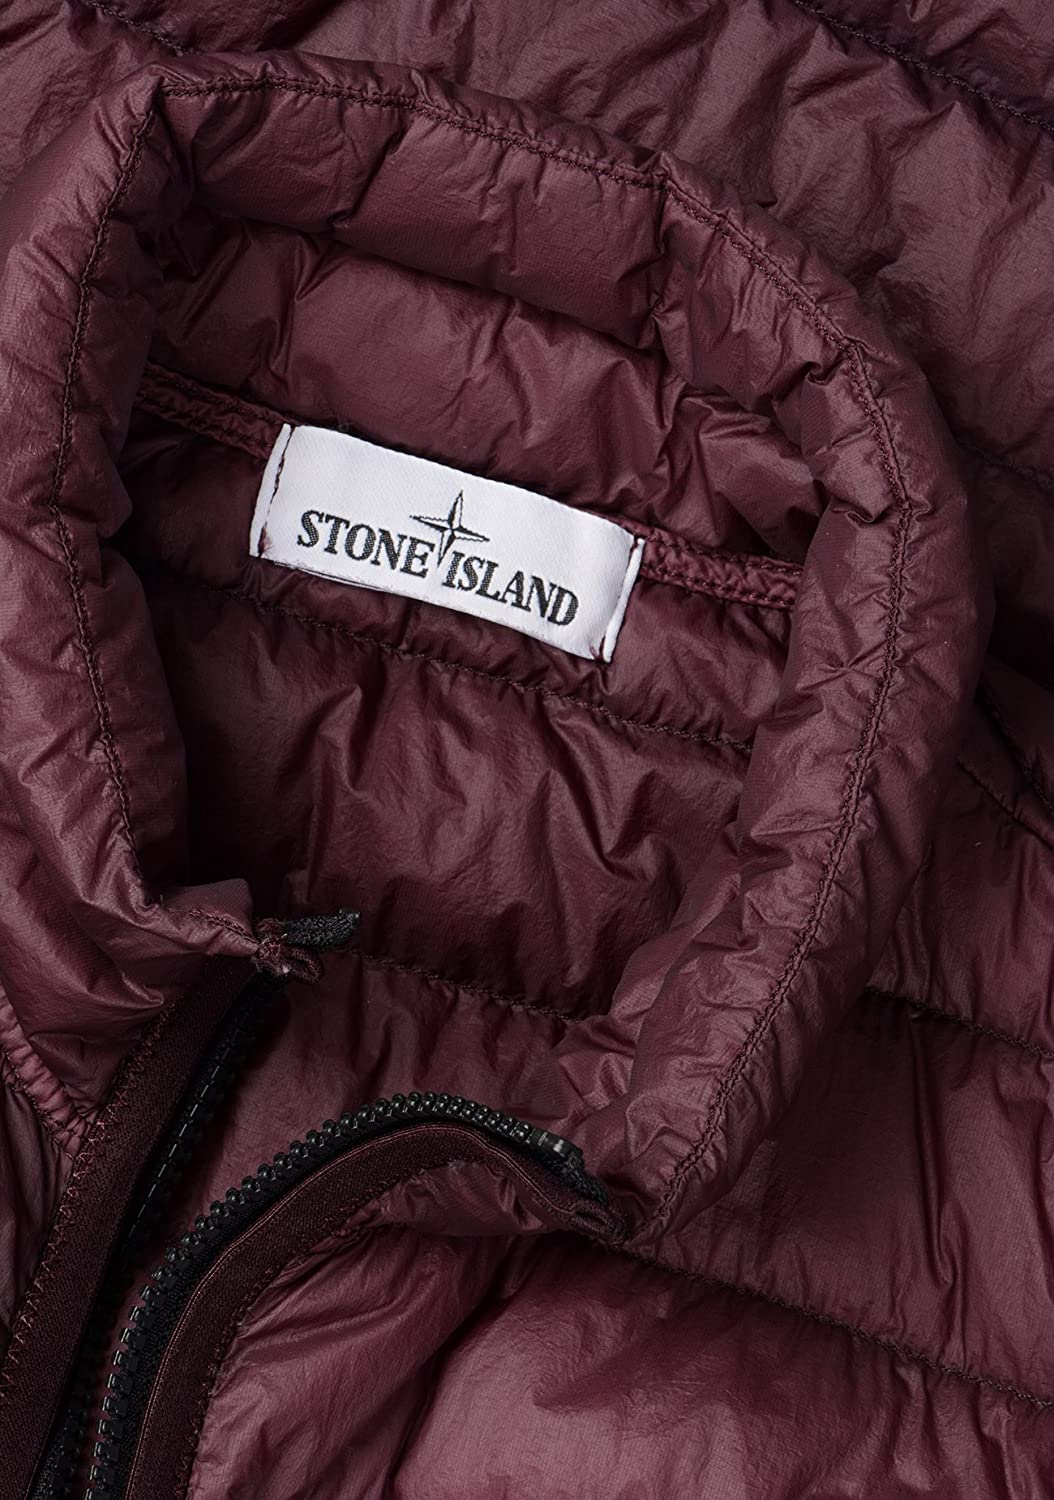 0c79602f2c268 Stone Island- Mens G0124 Garment Dyed Micro Yarn Down Packable Gilet in  Burgundy  Amazon.co.uk  Clothing